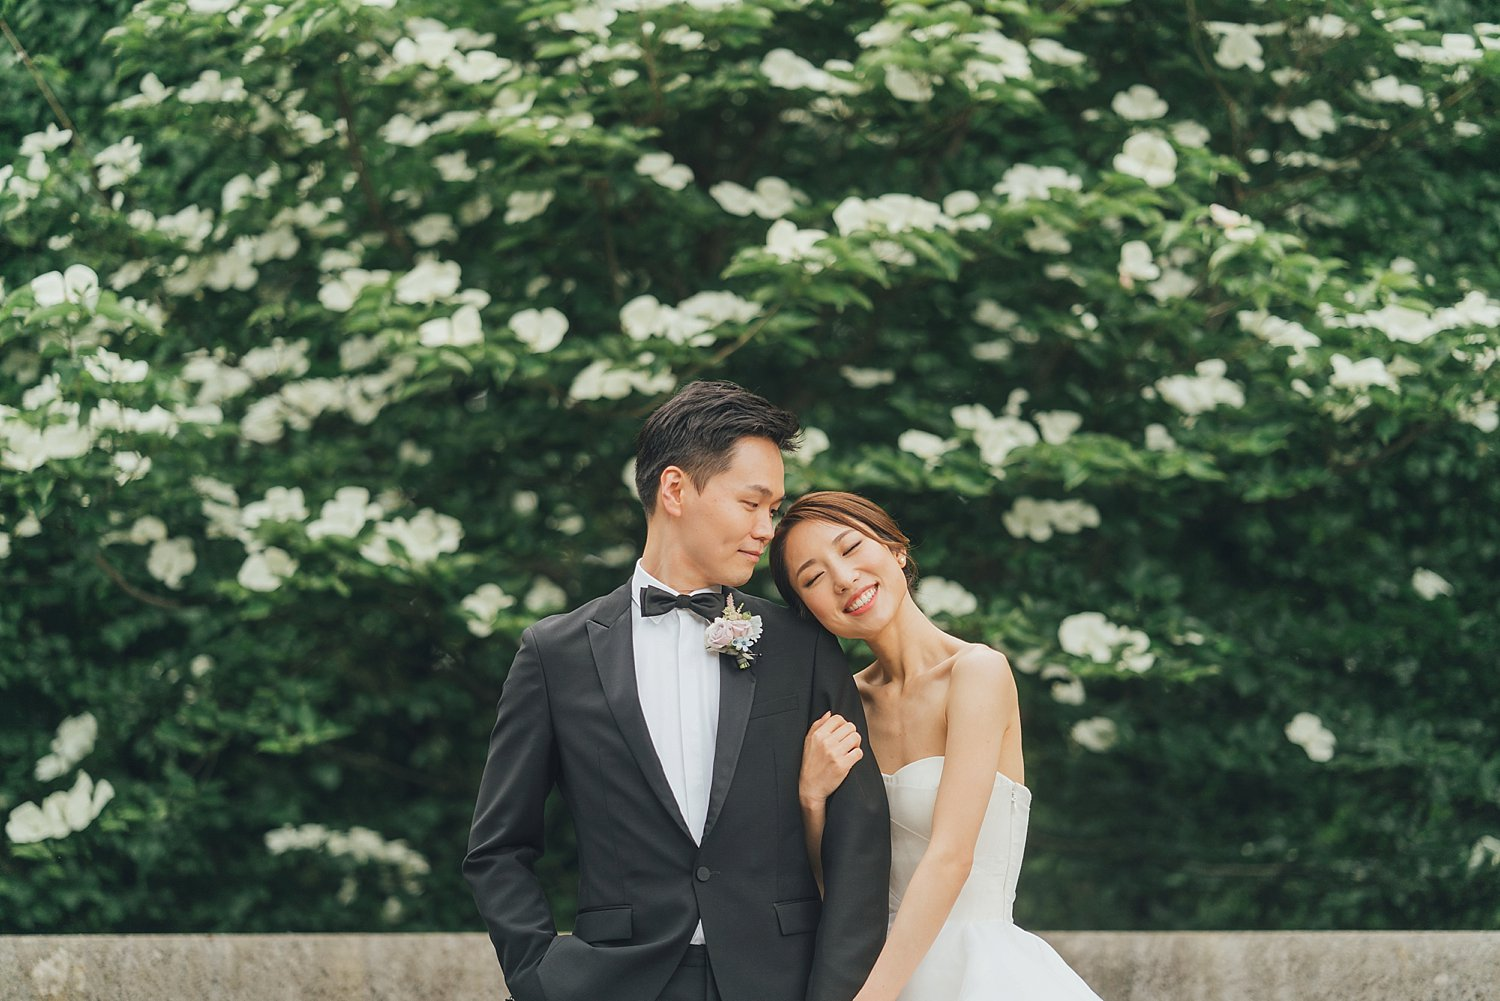 nyc-wedding-photography-nj-tri-state-cinematography-intothestory-by-moo-jae_0287.jpg